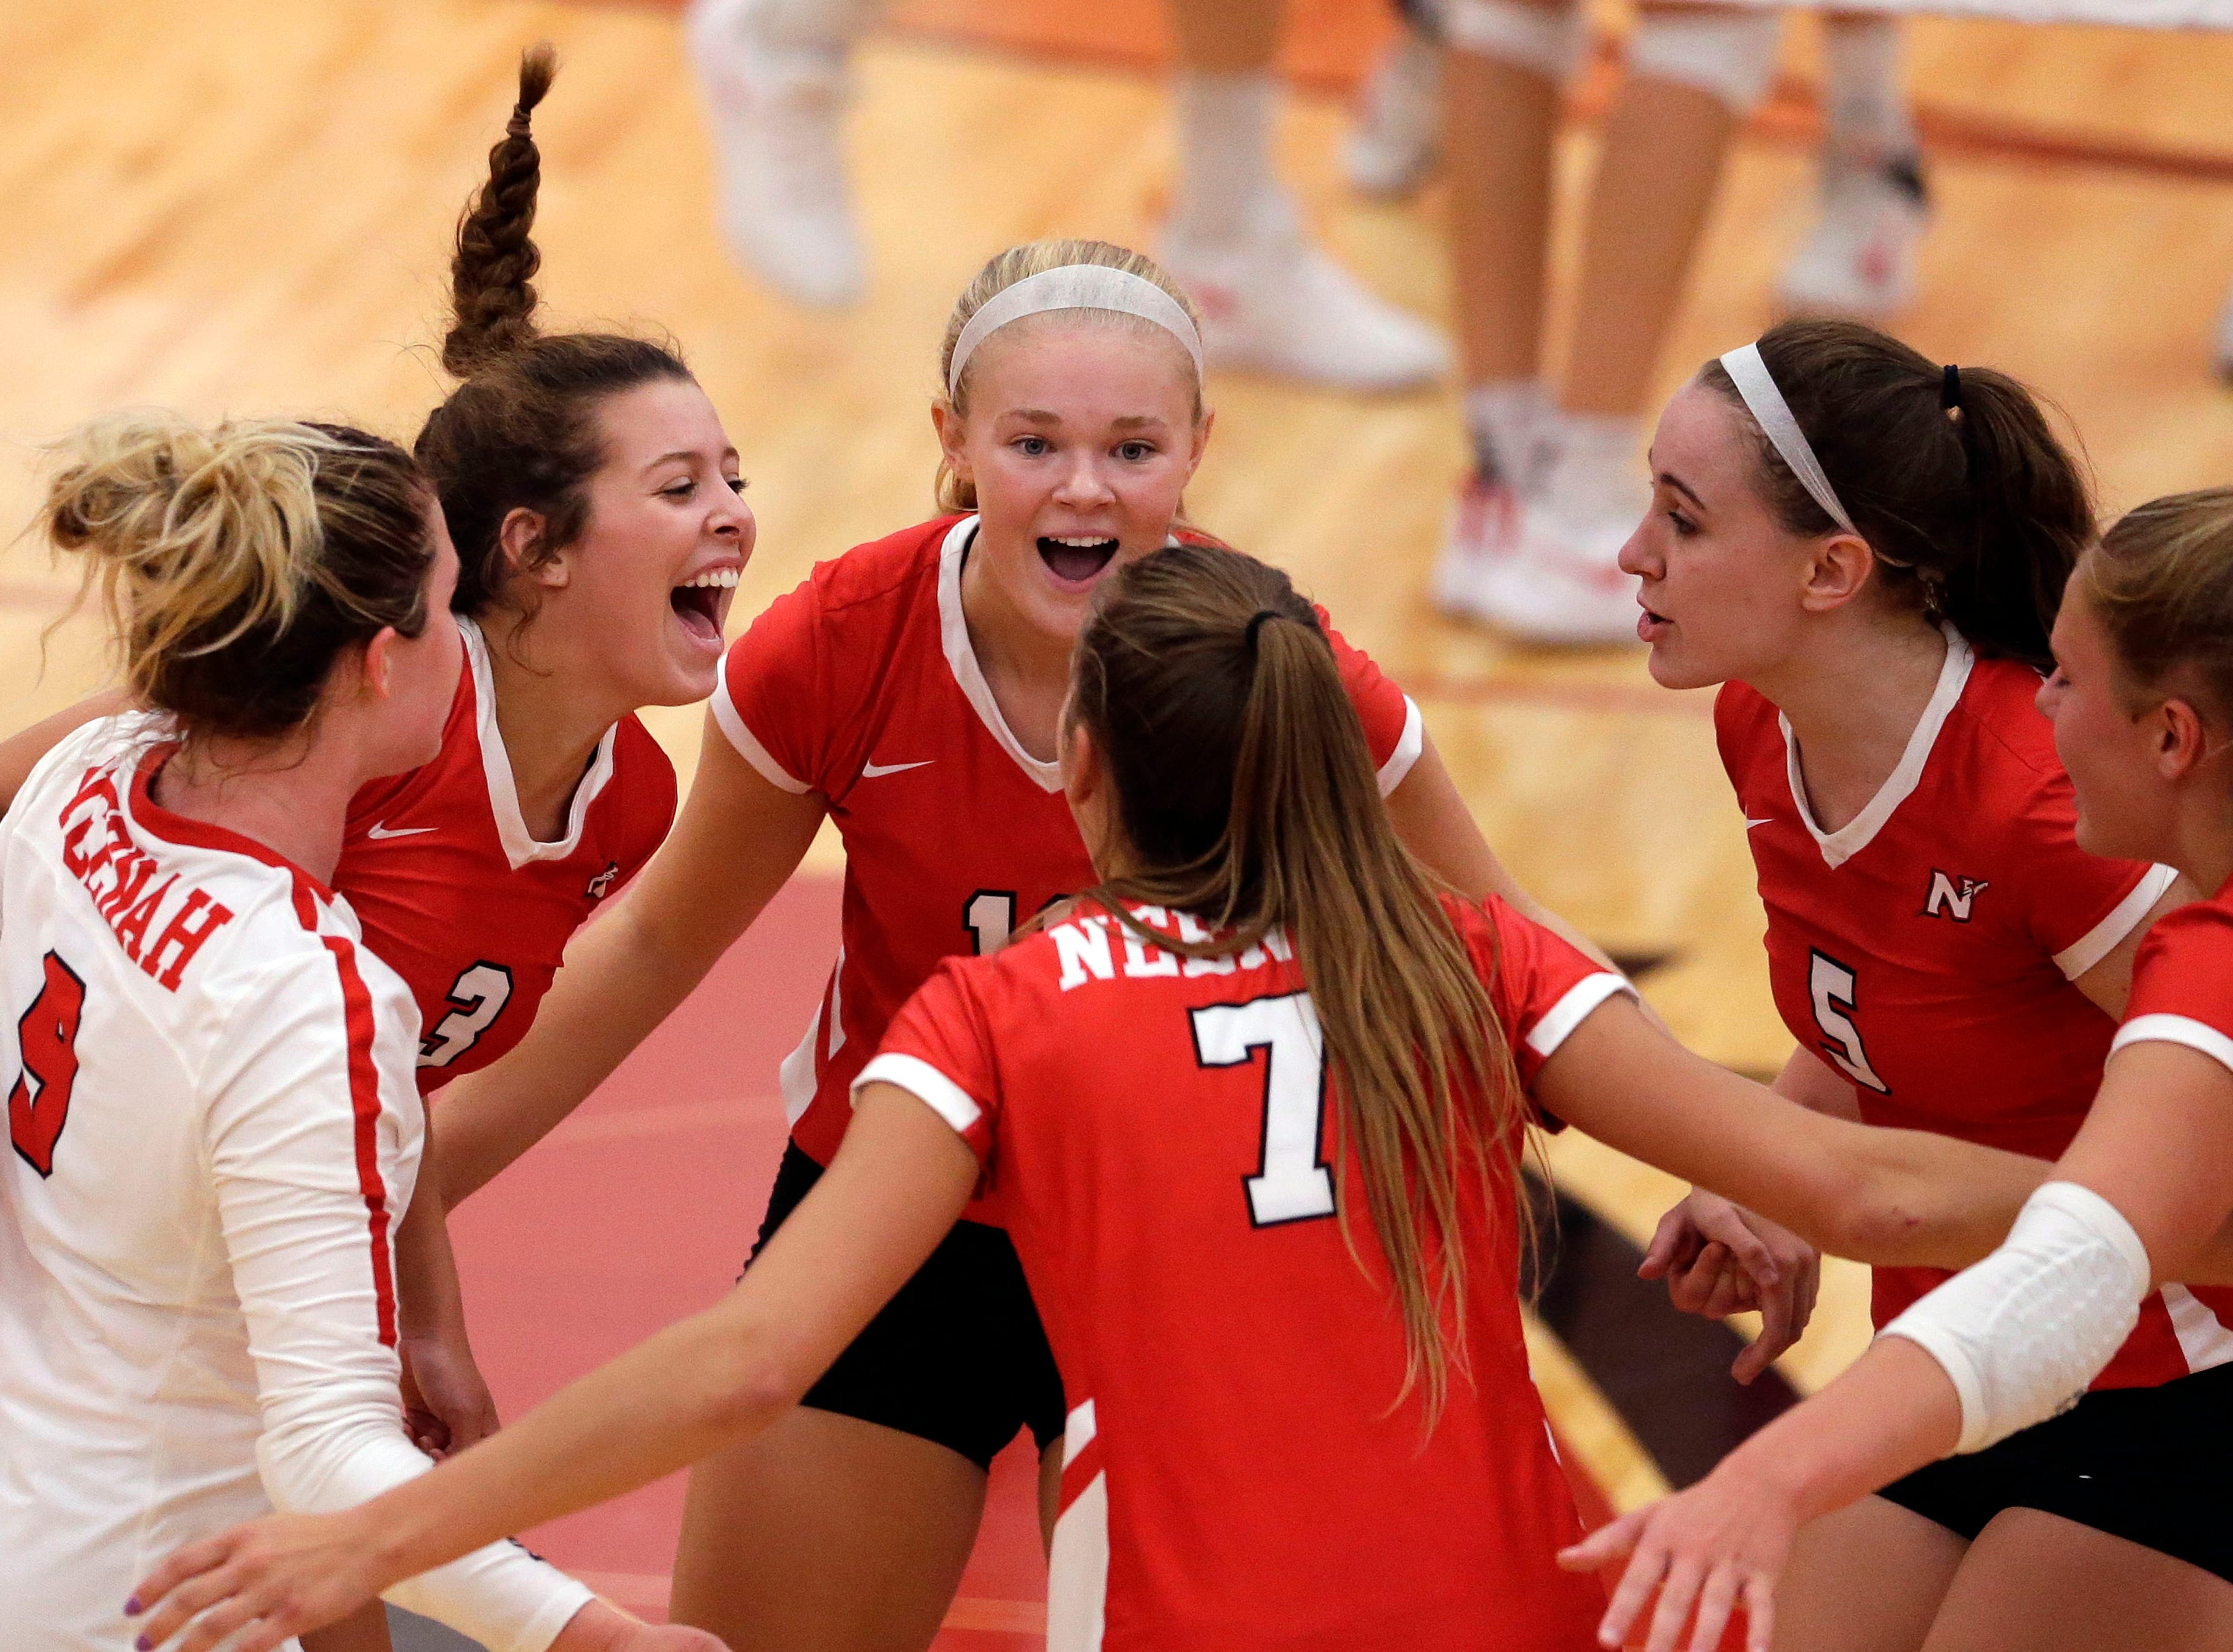 Neenah players celebrate a play against Kimberly in FVA girls volleyball Tuesday, September 11, 2018, at Kimberly High School in Kimberly, Wis.Ron Page/USA TODAY NETWORK-Wisconsin